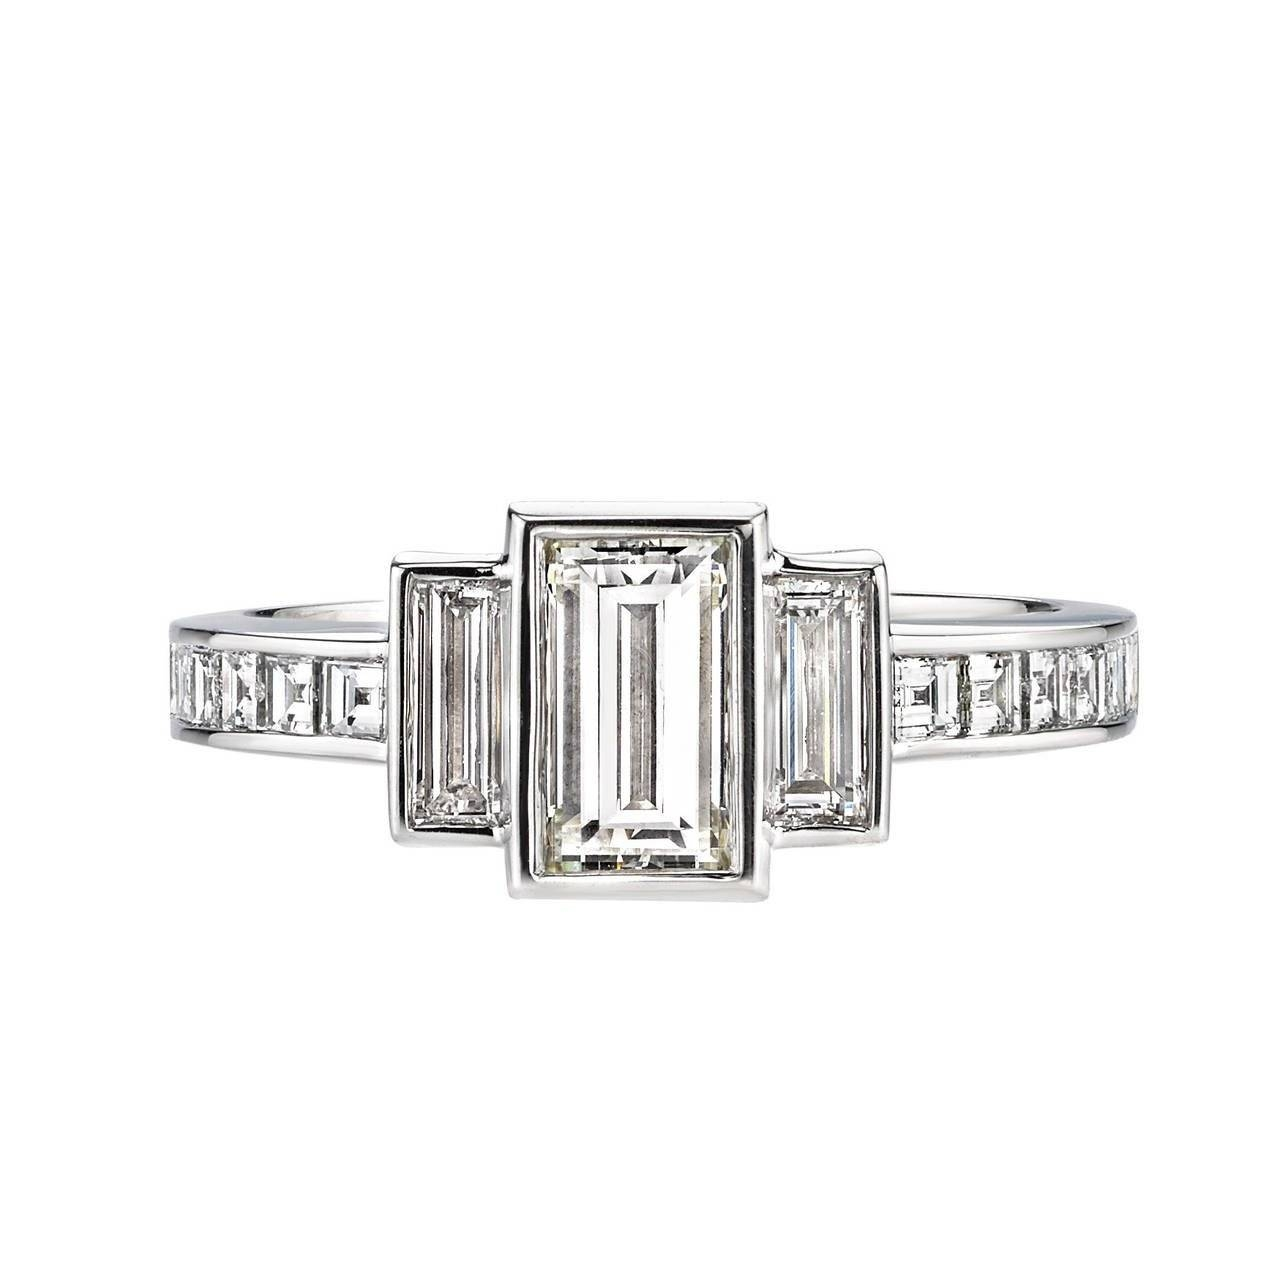 Baguette Emerald Cut Diamond Platinum Engagement Ring For Sale At Intended For Emerald Cut Engagement Rings Baguettes (View 3 of 15)